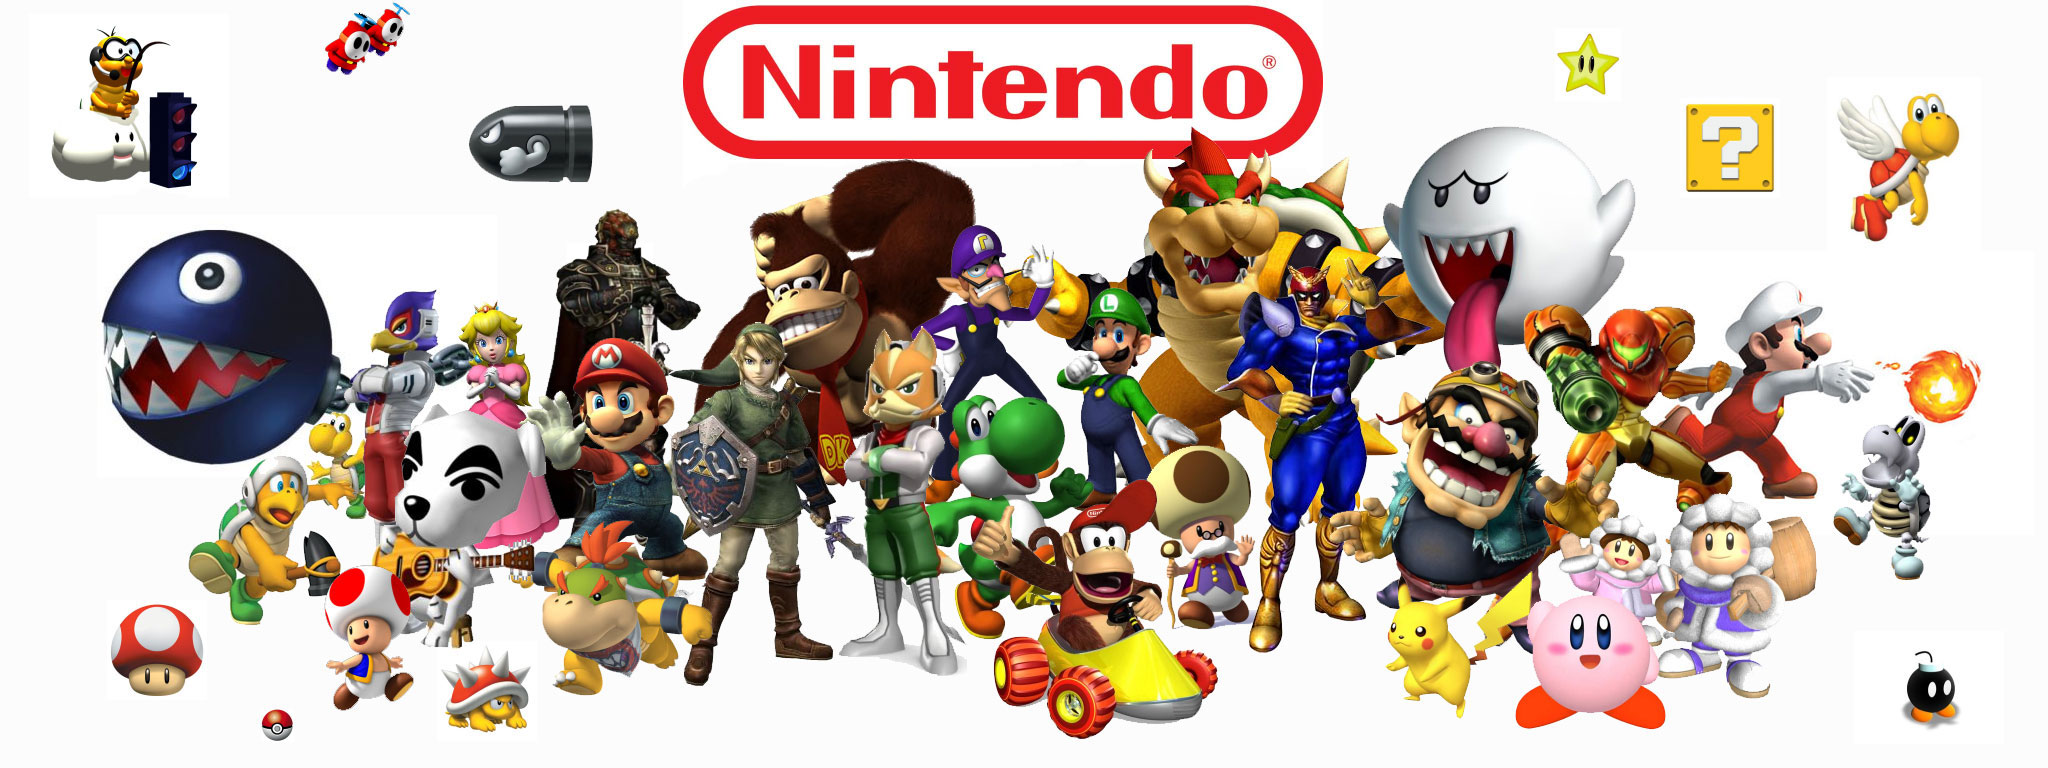 Nintendo WILL Make Games For Android & iOS In 2015/16 | Know Your Mobile